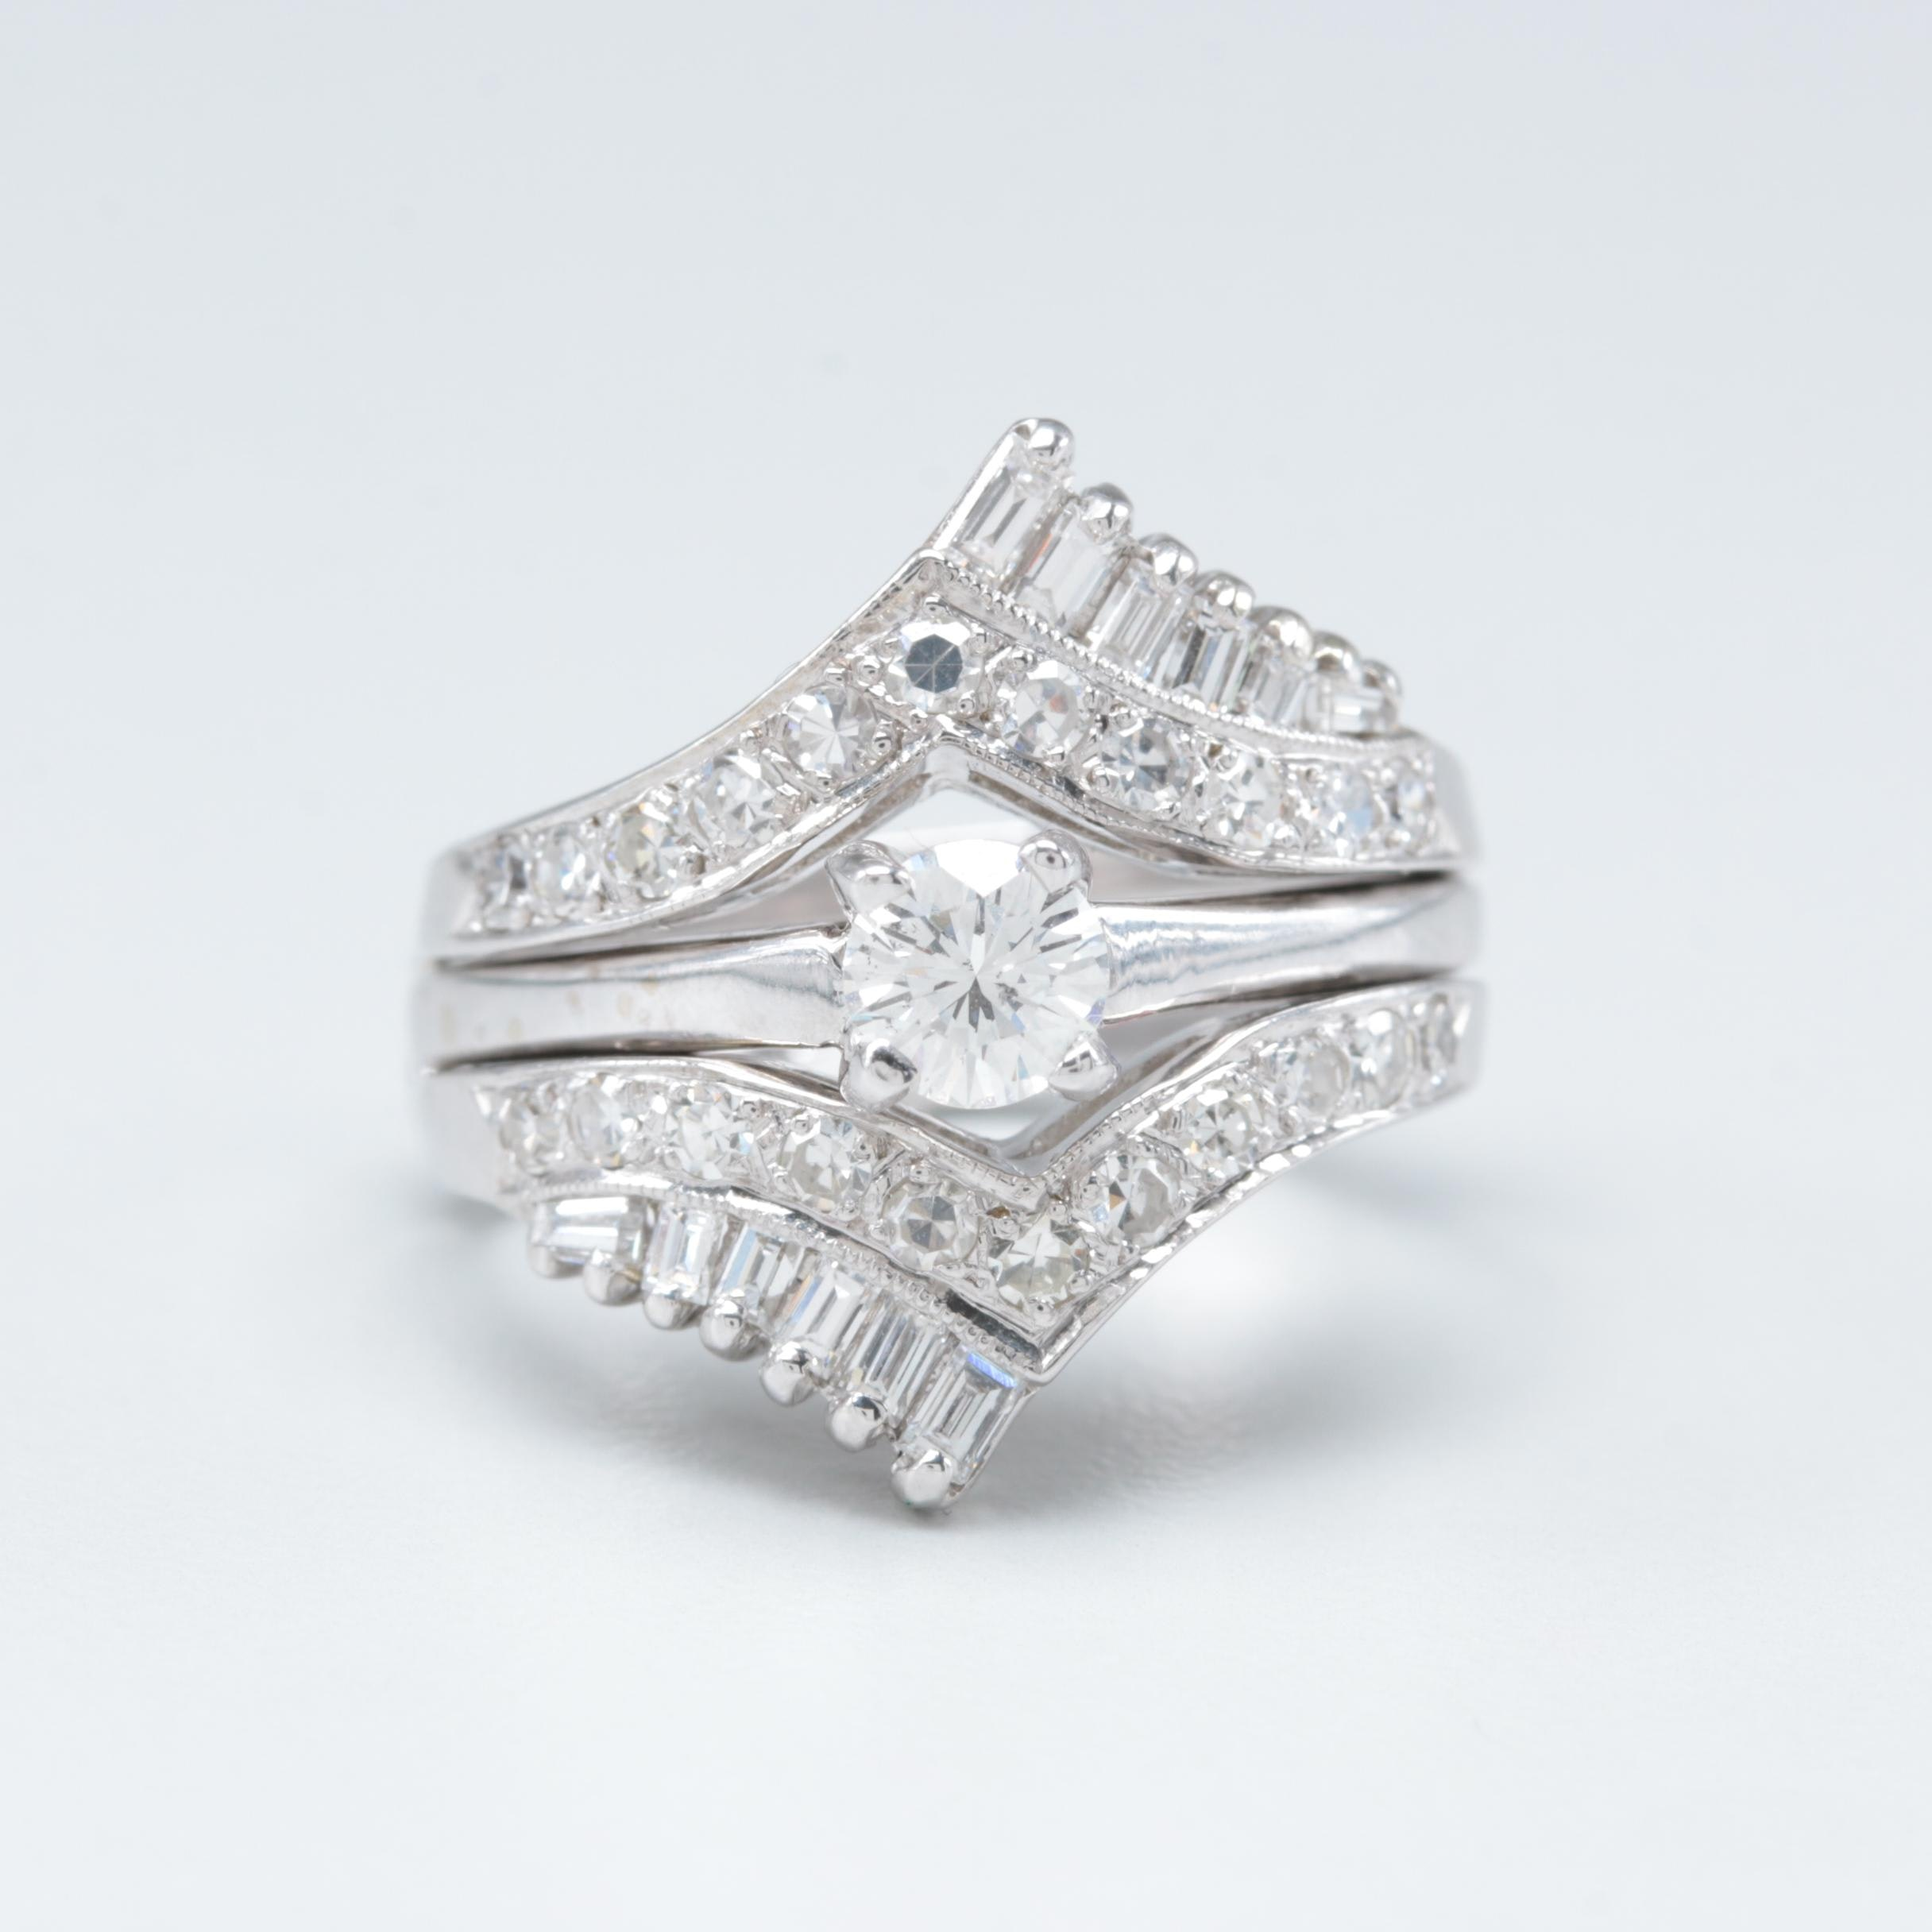 14K White Gold 1.36 CTW Diamond Ring and Ring Jacket